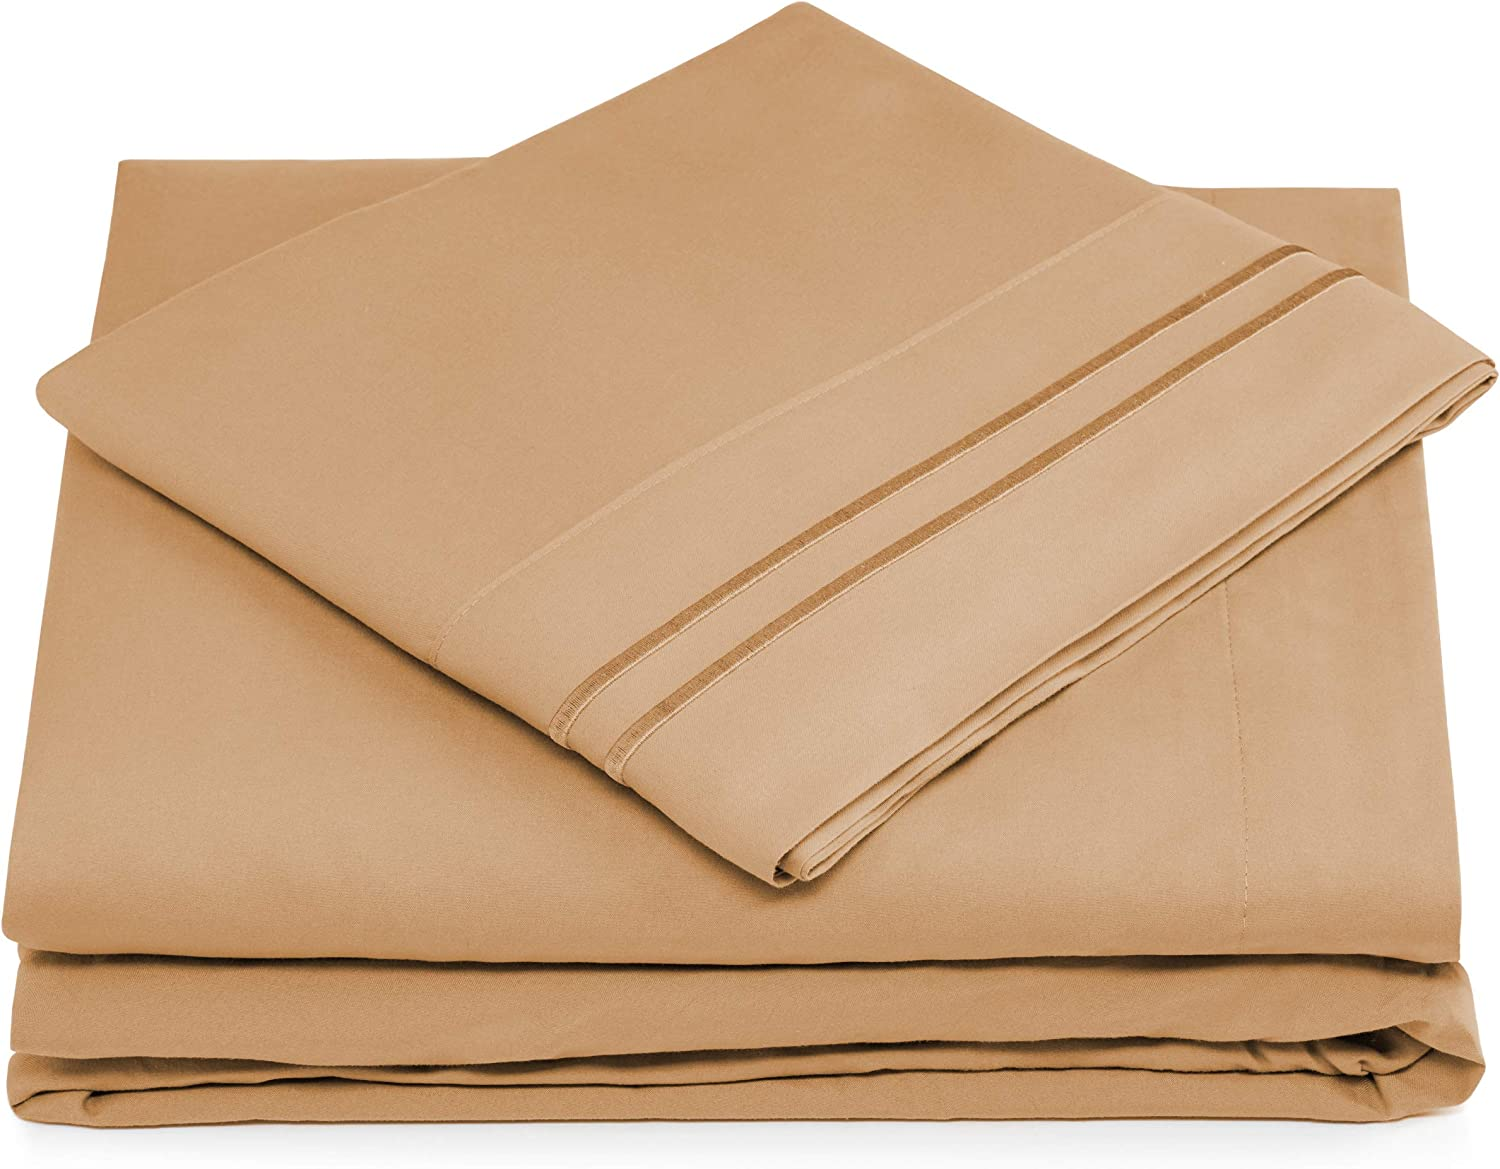 Split King Bed Sheets - Taupe Luxury Sheet Set - Deep Pocket - Super Soft Hotel Bedding - Cool & Wrinkle Free - 2 Fitted, 1 Flat, 2 Pillow Cases - Light Brown SplitKing Sheets - 5 Piece